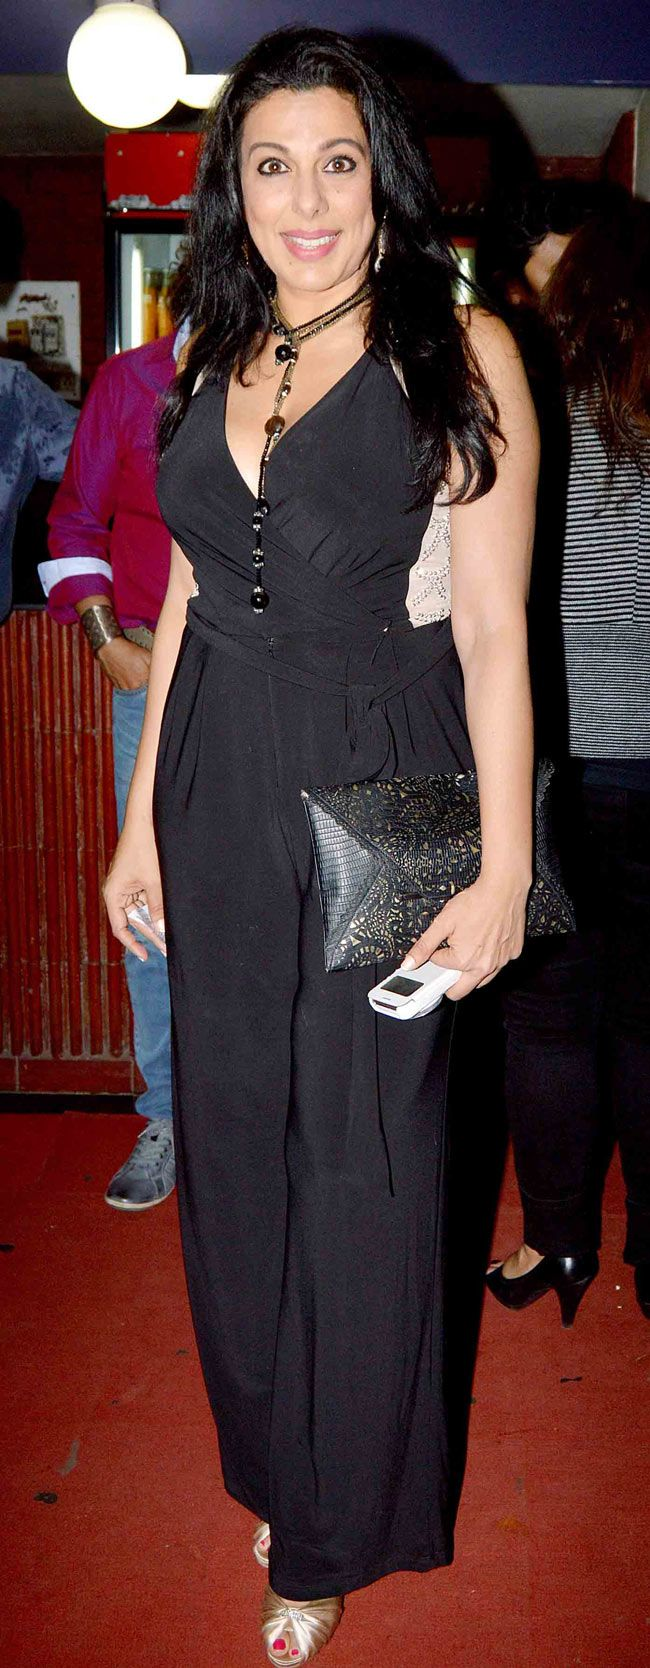 Pooja Bedi at the screening of 'Kill Dil'. #Bollywood #Fashion #Style #Beauty #Page3